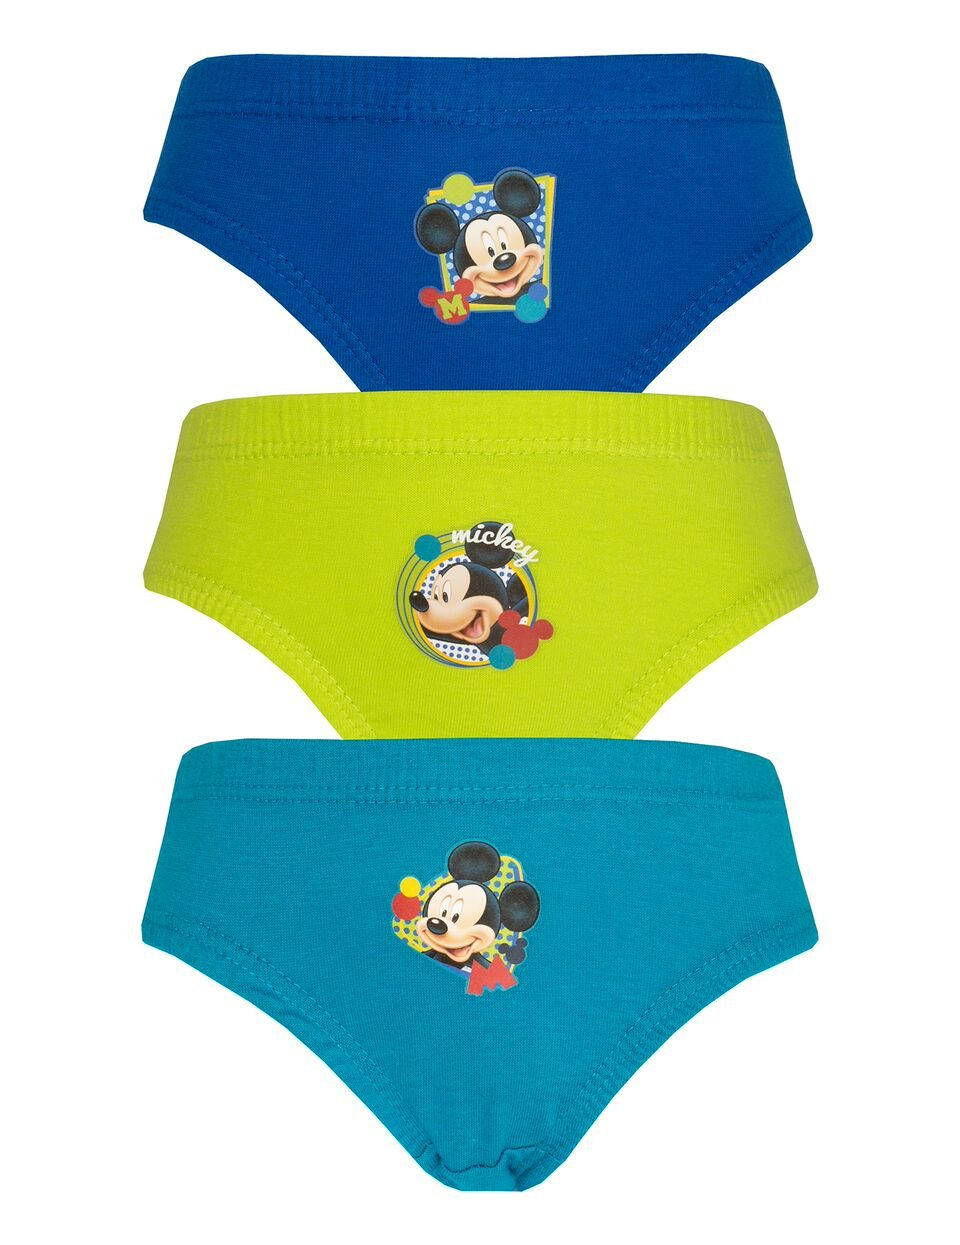 Disney Mickey Mouse 3 Pack Boys Pants / Briefs